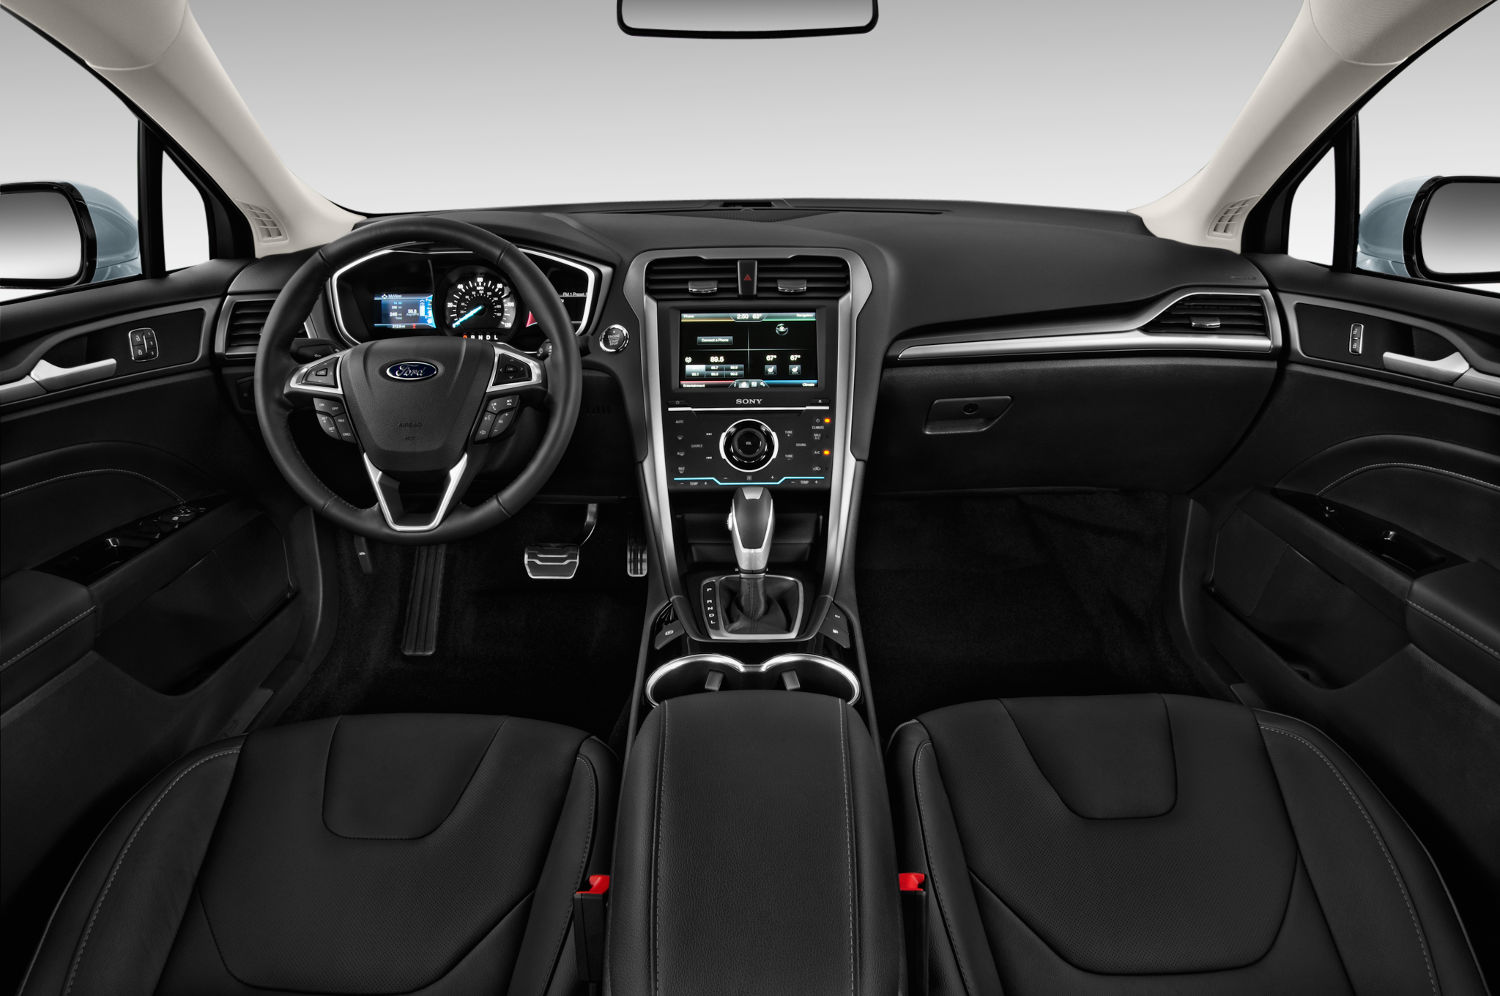 Comparison  Ford Edge Sport 2016  Vs  Audi Q5 Suv 2015. Cox Home Security Phone Number. Media Production Courses James Butler Attorney. Best Desktop Sharing Software. Computer Classes Atlanta Mba Programs No Gmat. Community Colleges In Savannah Ga. Rowell Family Empowerment Lifepak Express Aed. Jaguar Xfr Supercharged Breast Cancer Fatigue. At&t Business Phone Support Make A Websites